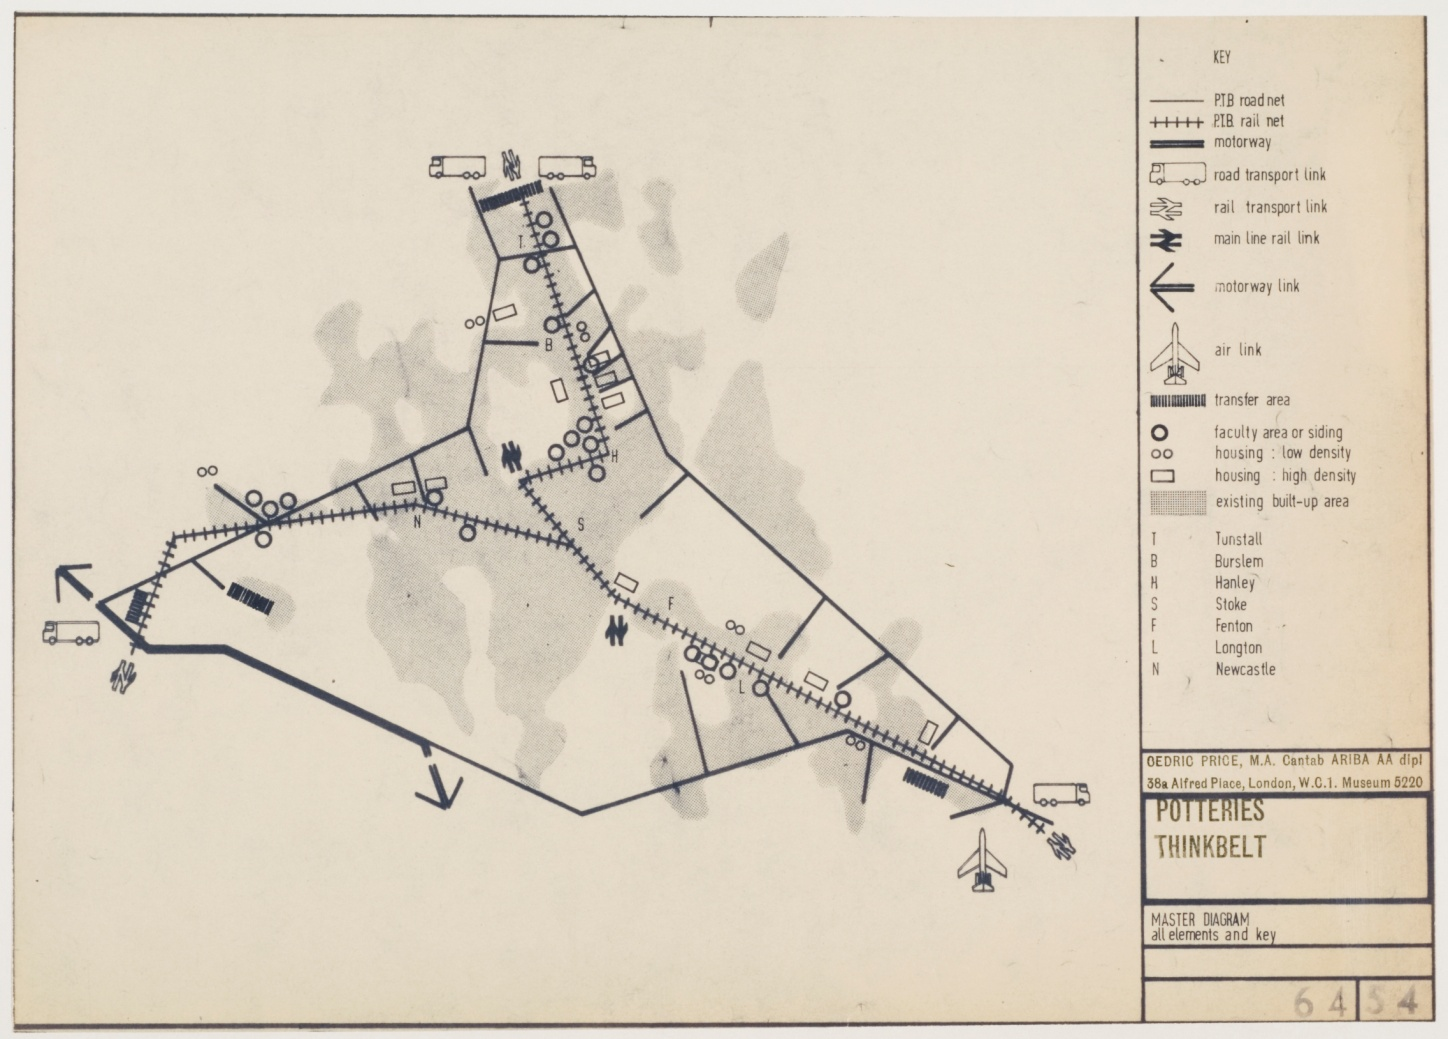 Cedric Price, Potteries Thinkbelt: diagramme, entre 1963 et 1966, diazotype sur papier, 30,3 x 42,2 cm, DR1995:0216:233, Fonds Cedric Price, Centre canadien d'architecture © CCA.